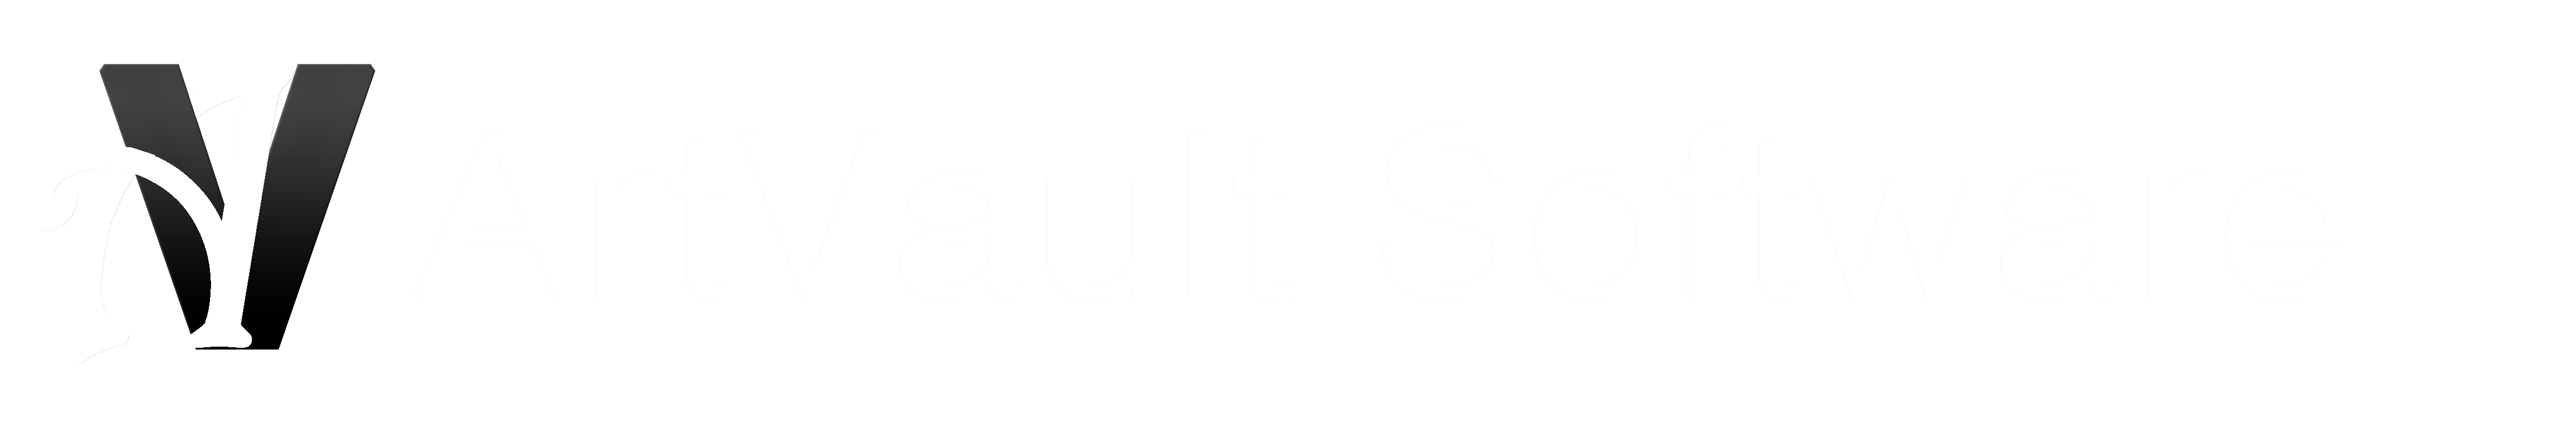 ArtVault Software